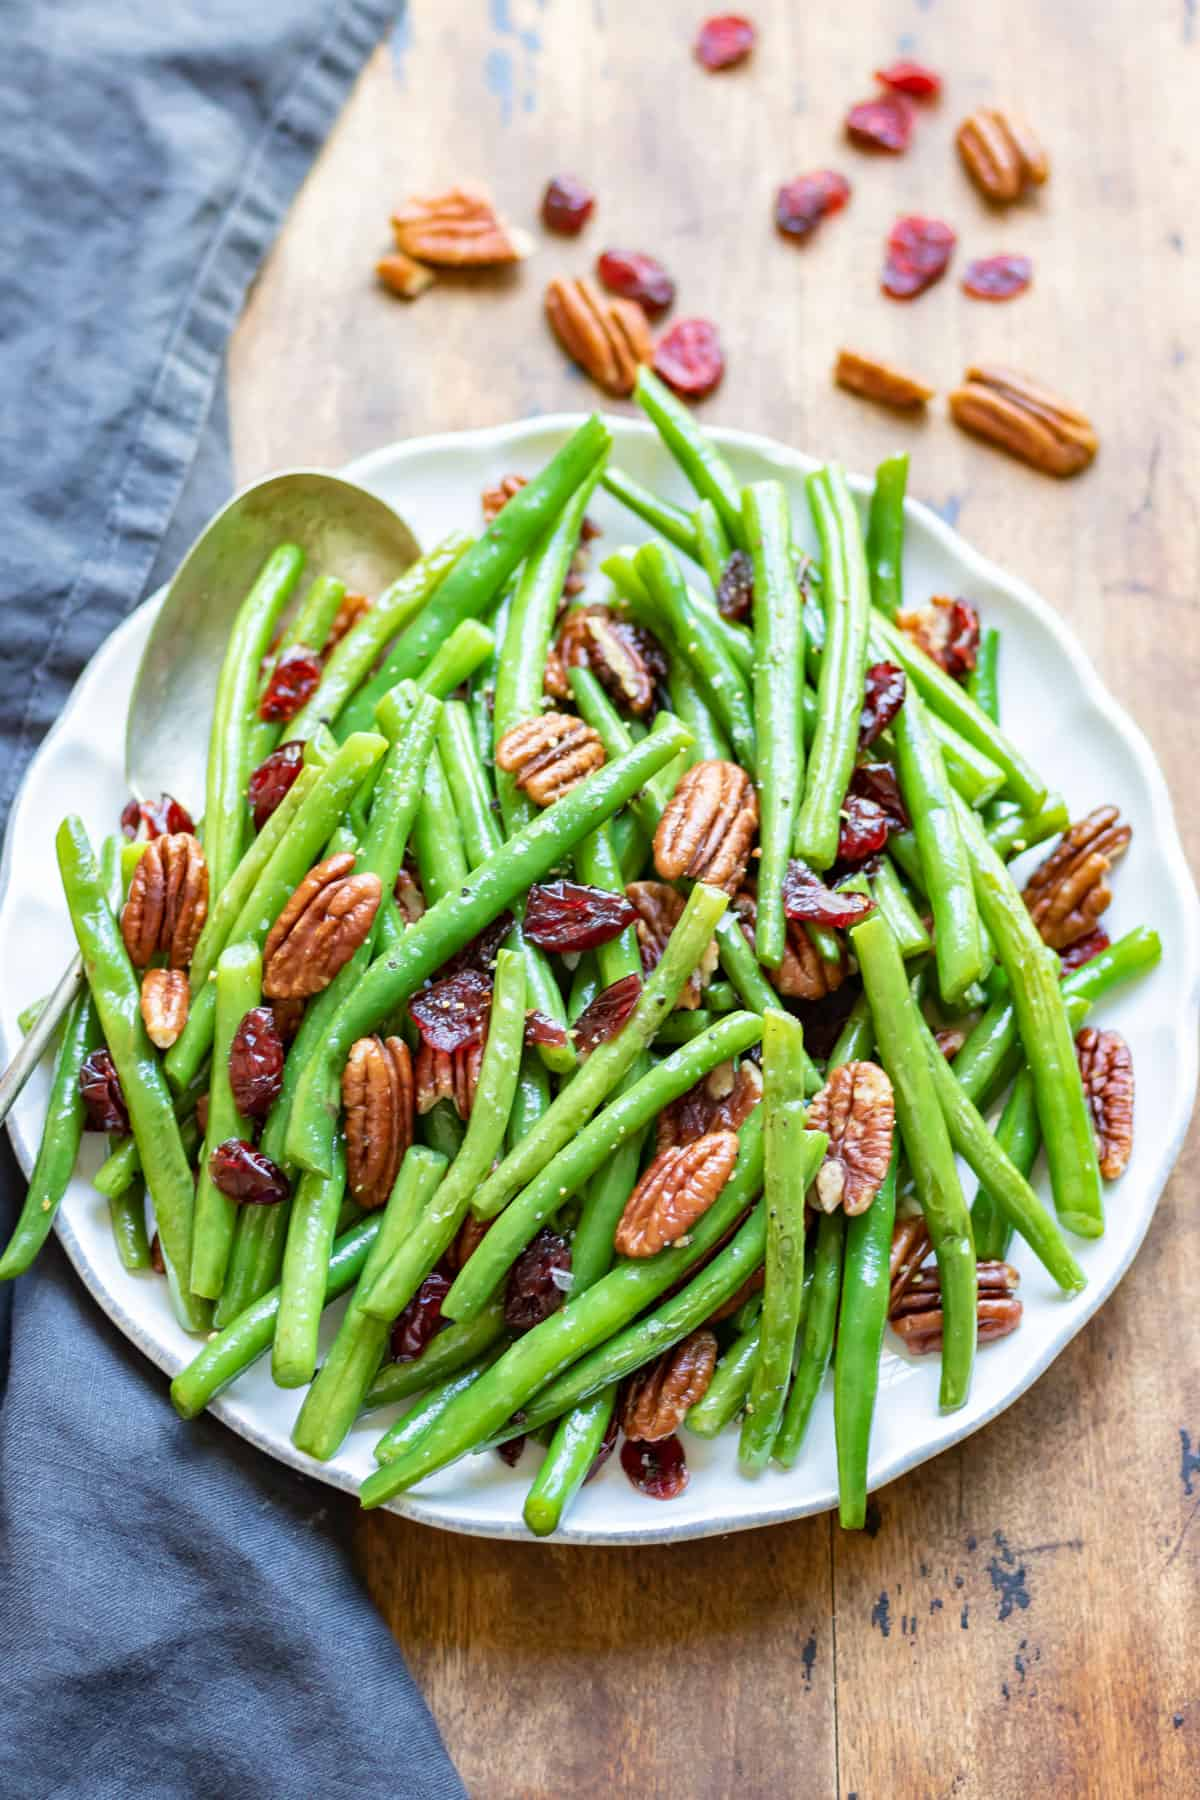 A serving dish of green beans with cranberries and pecans.